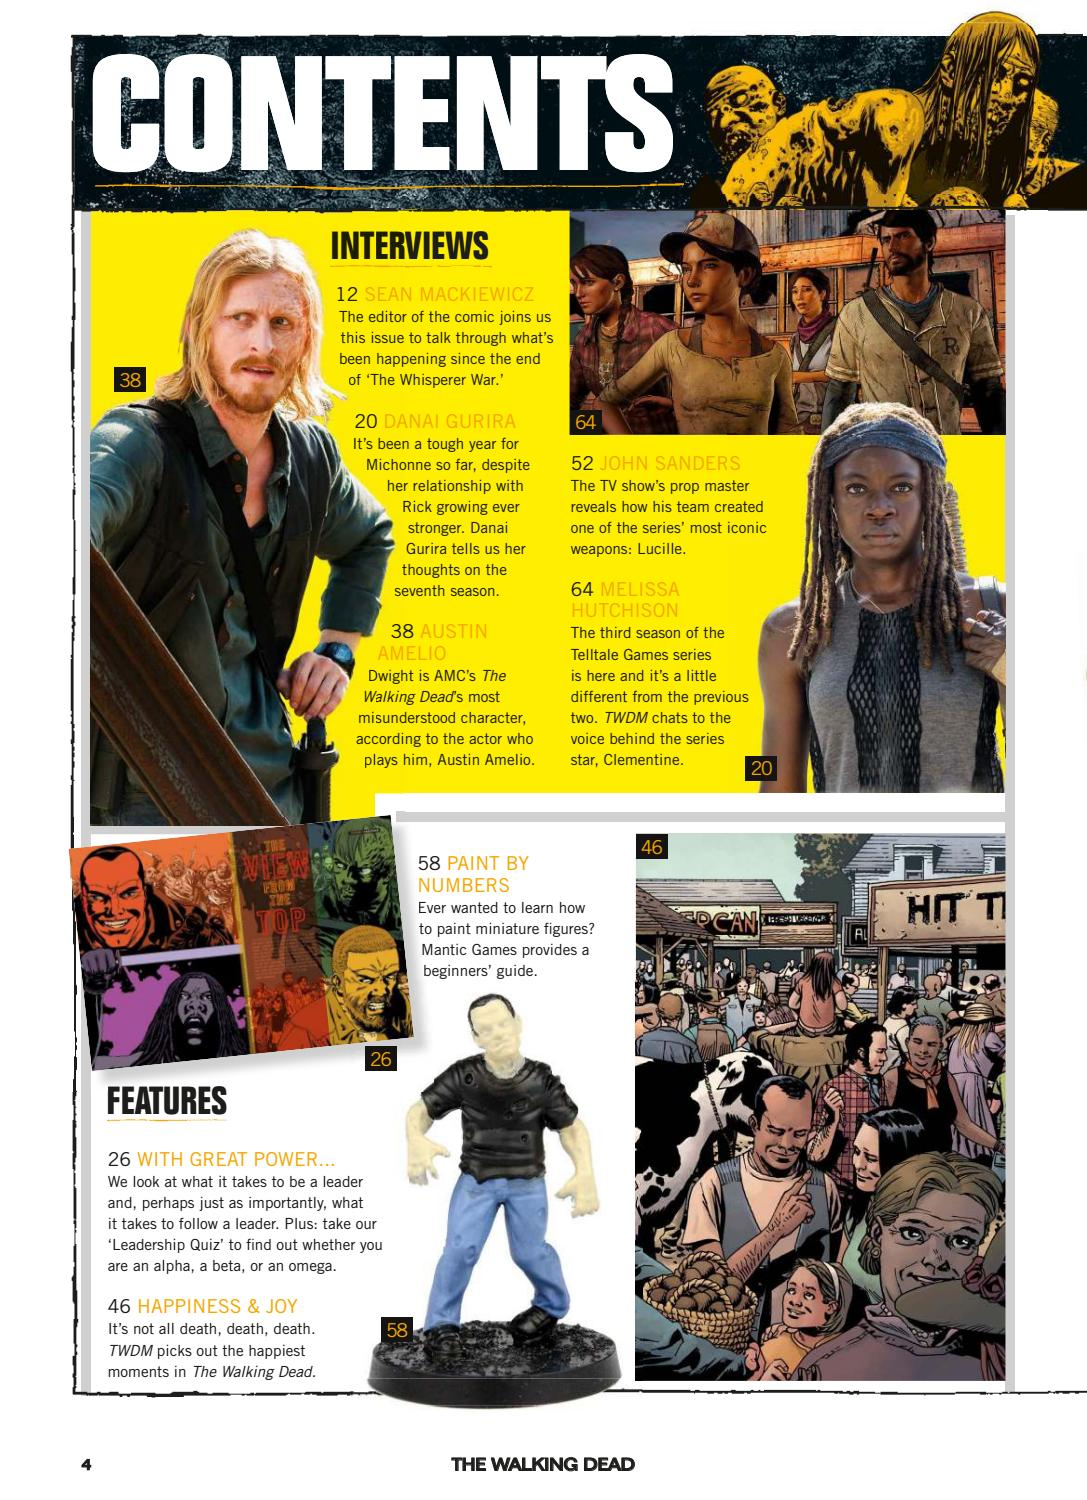 TWD Mag issue 20 spring 2017 by comics2017 - issuu